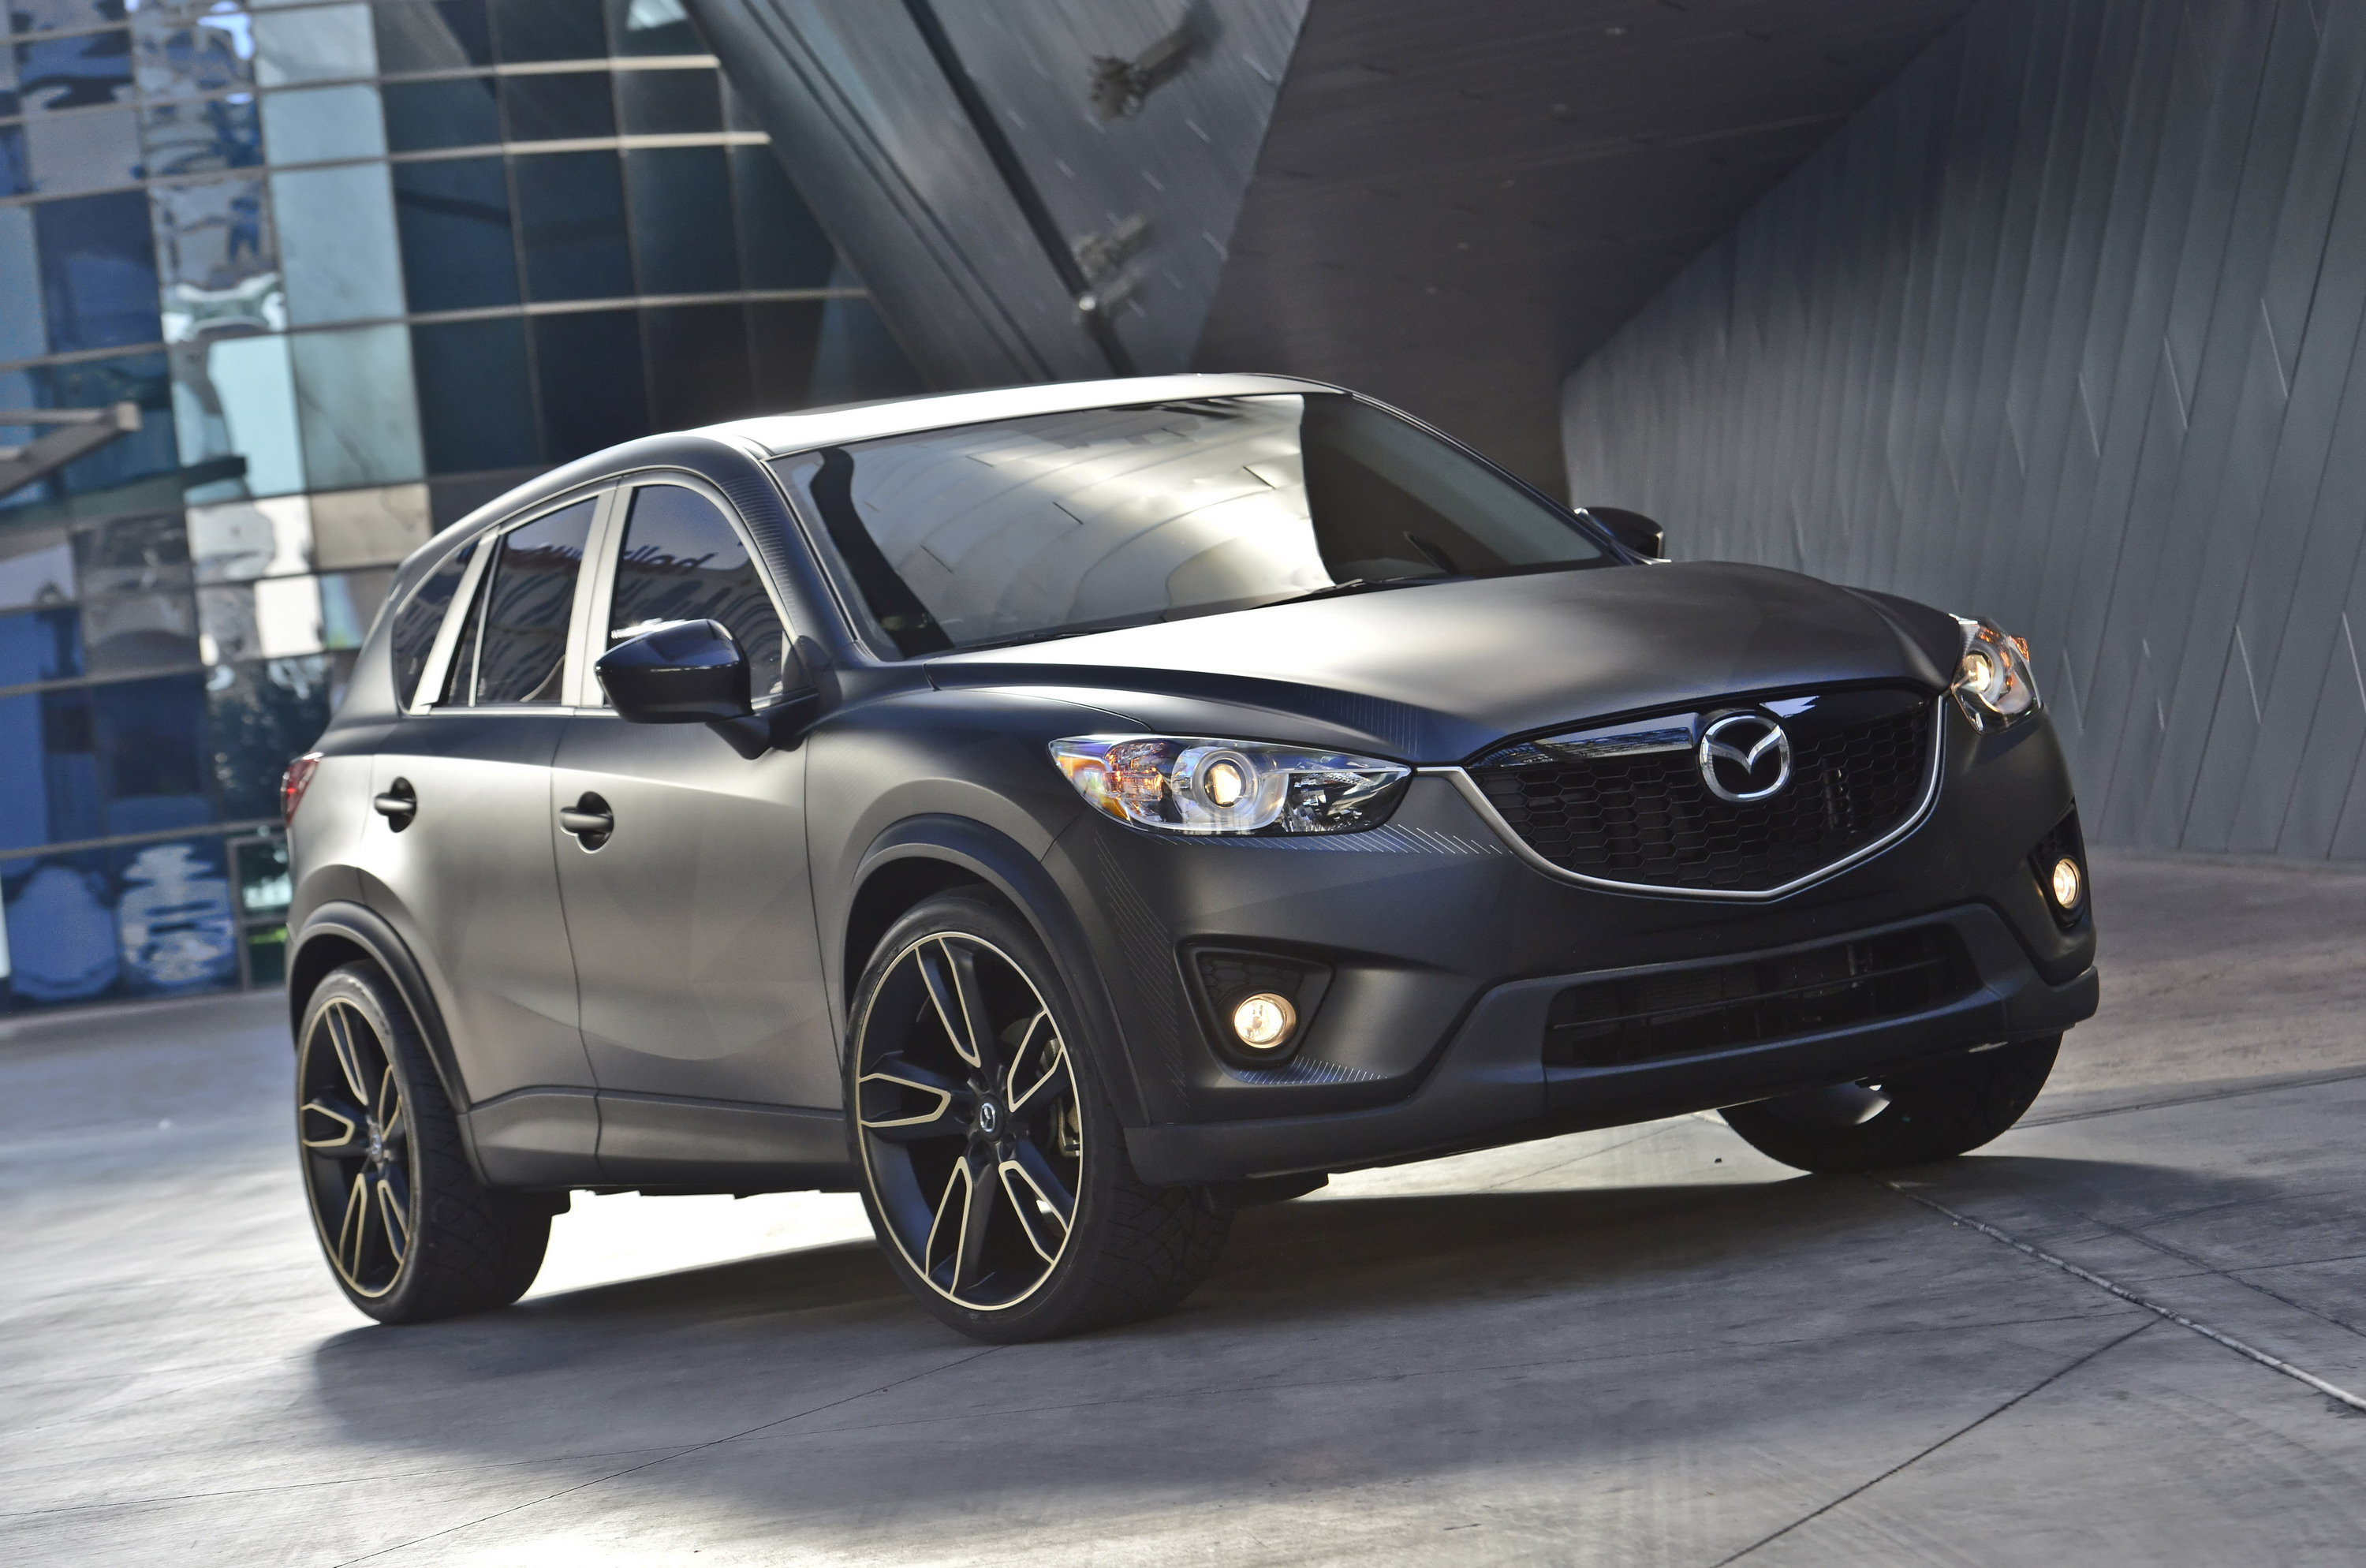 2012 mazda cx-5 urban review - gallery - top speed